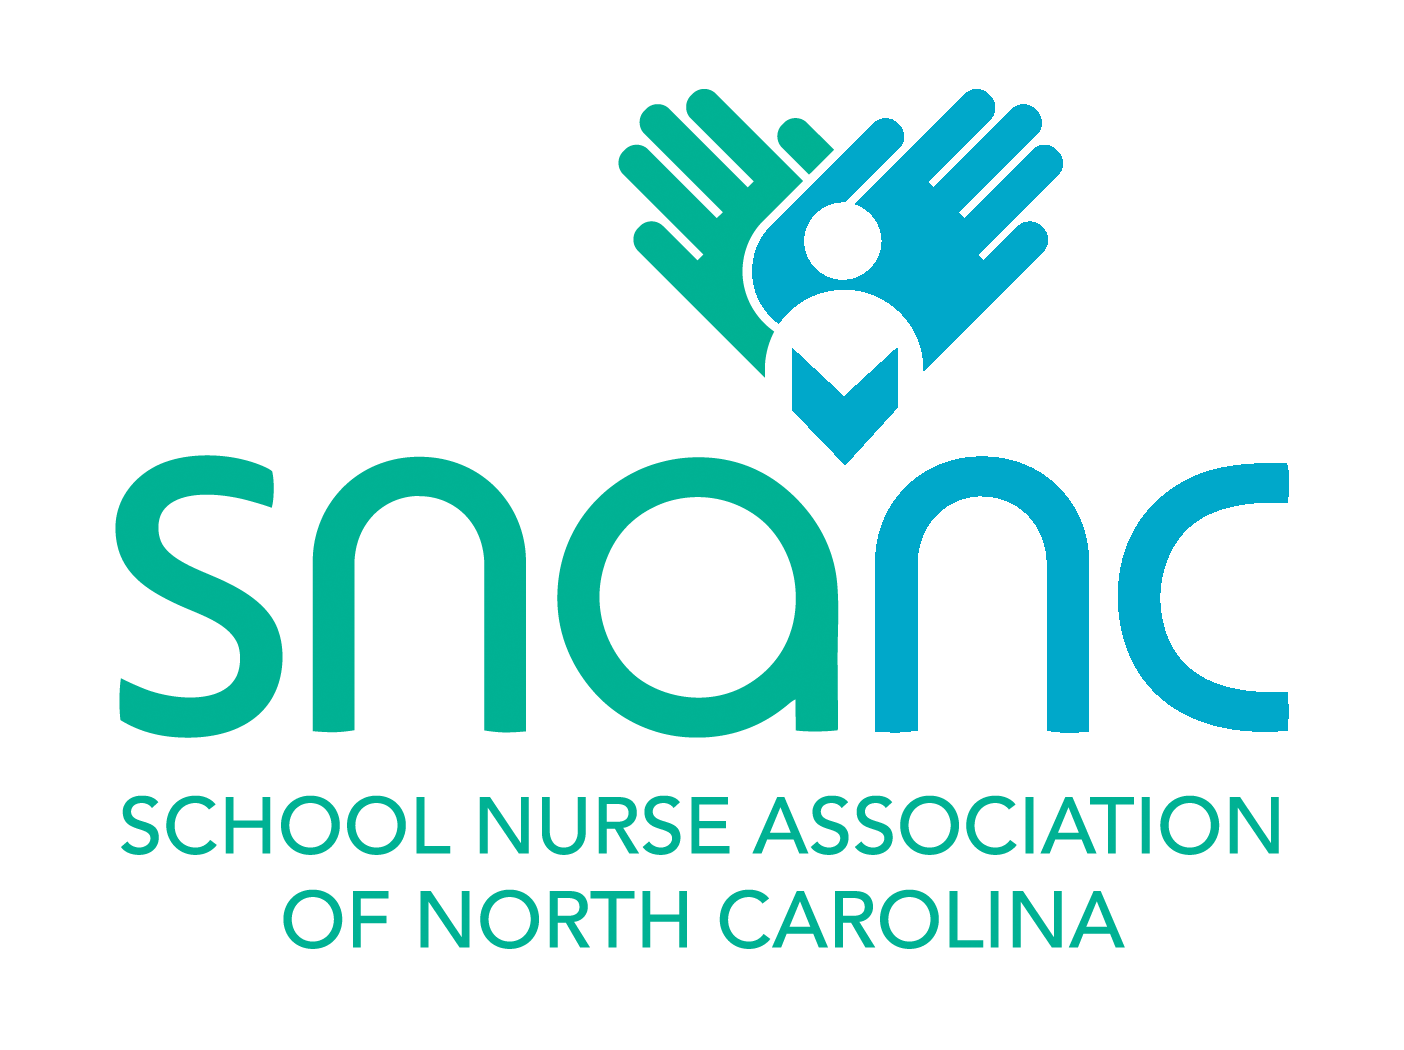 School Nurse Assocation of North Carolina